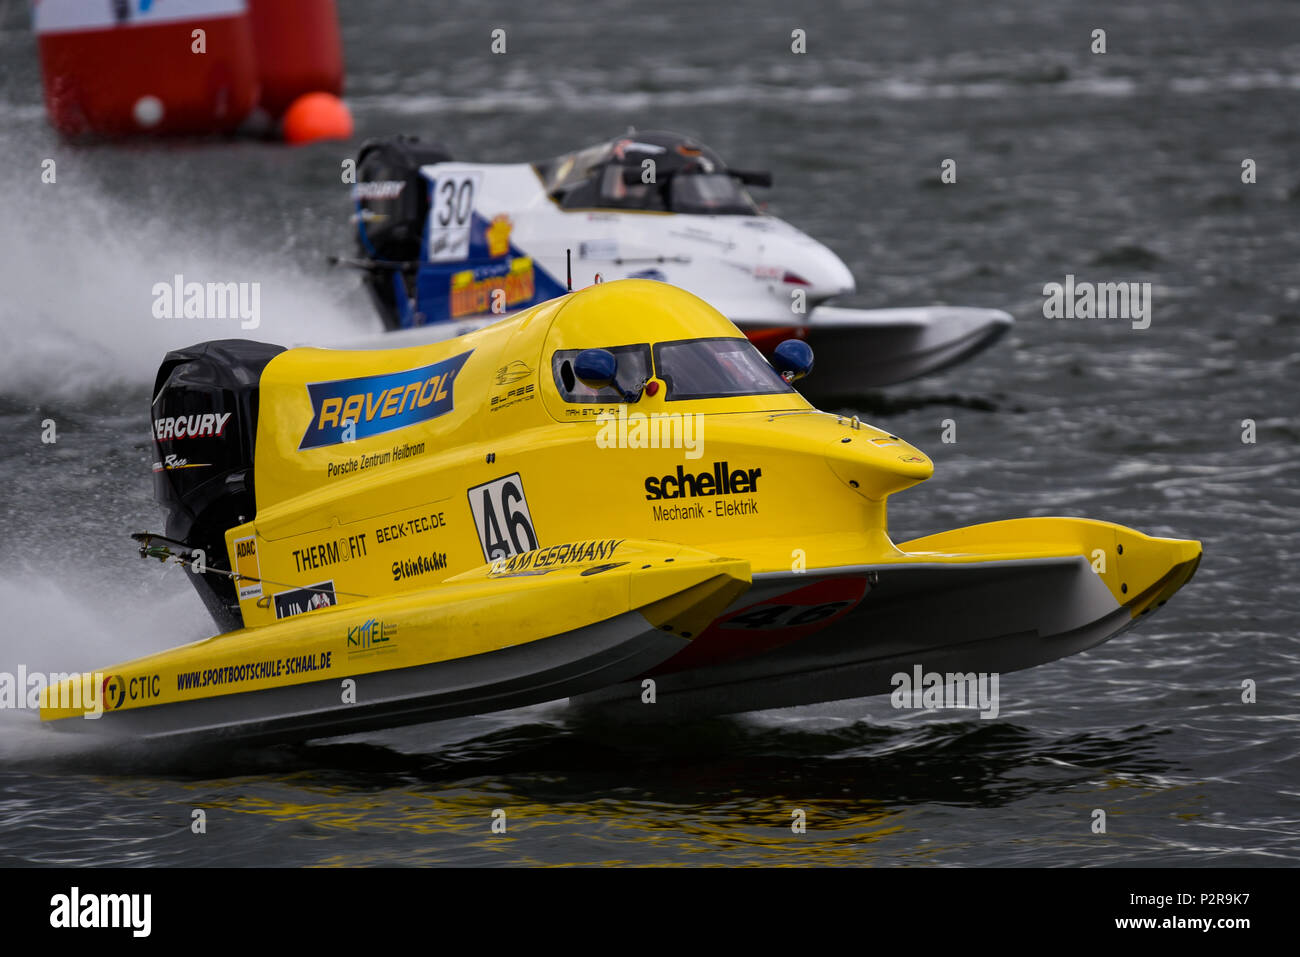 Max Stilz of Blaze Performance team racing in the F1H2O F4-S Powerboat Grand Prix of London at Royal Victoria Dock, Docklands, Newham, London, UK - Stock Image